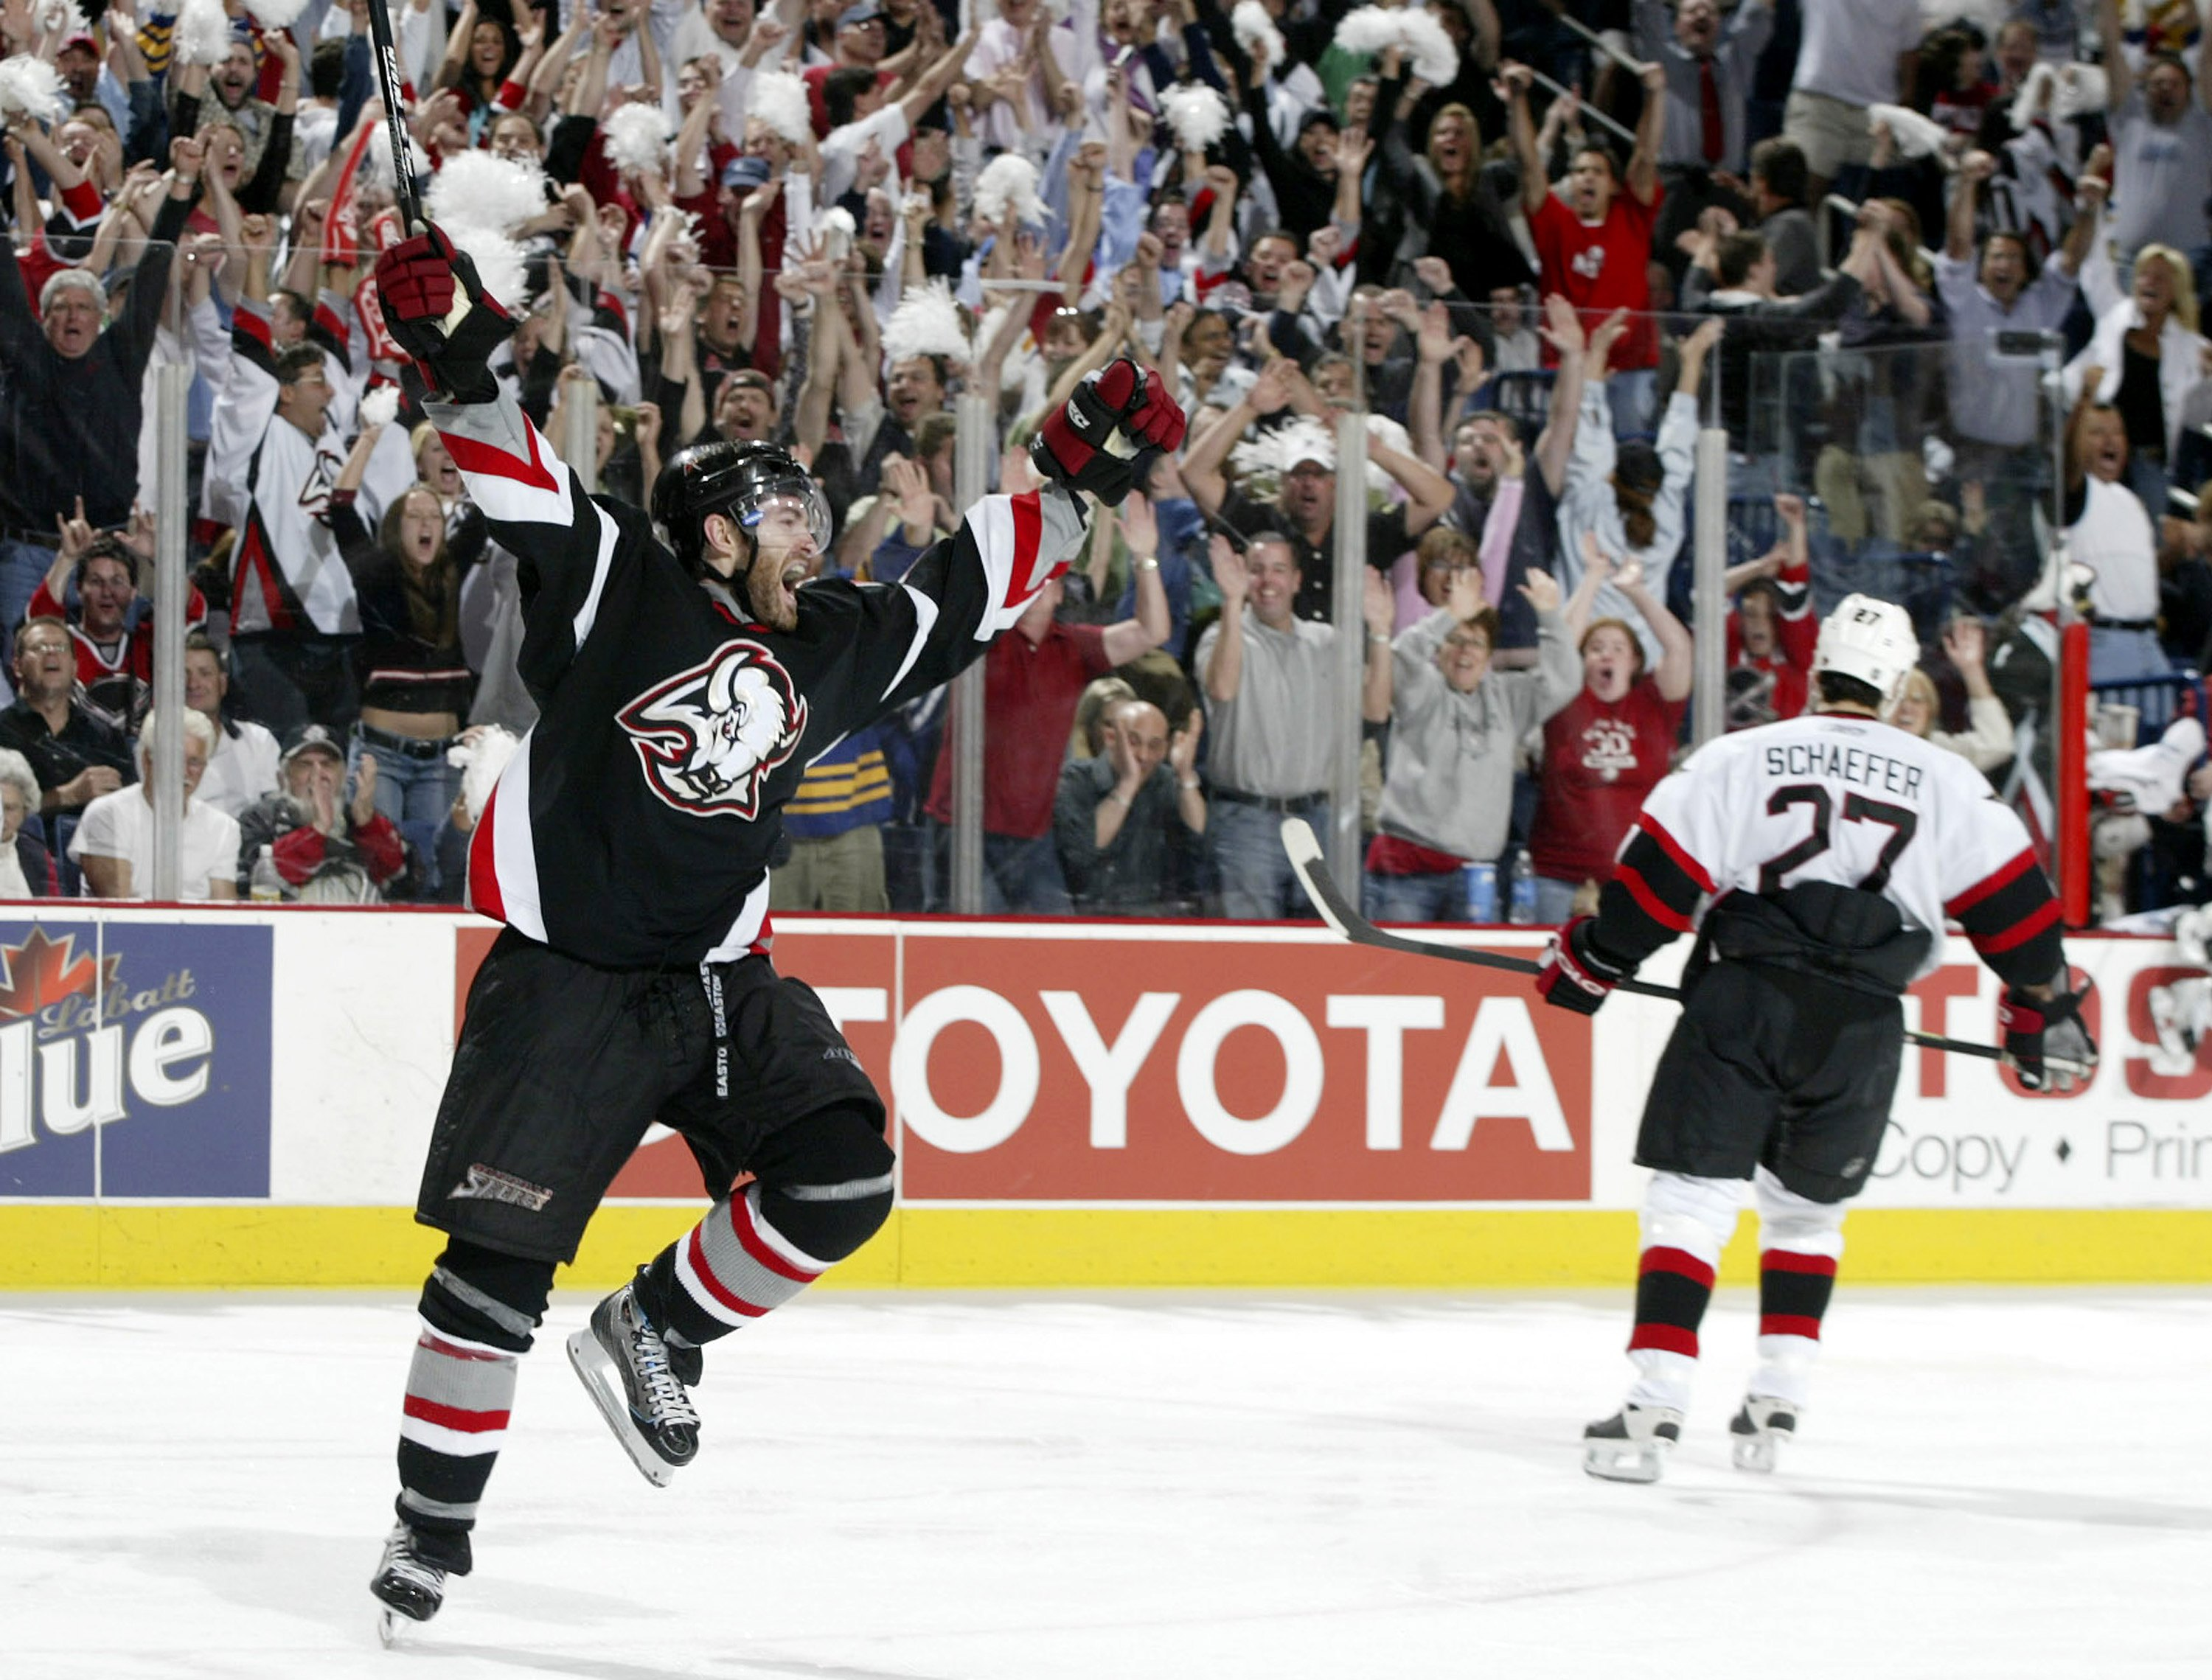 J.P. Dumont #17 of the Buffalo Sabres celebrates scoring the game-winning goal at 14:55 of the first overtime period to defeat the Ottawa Senators 3-2 in game three of the Eastern Conference Semifinals on May 10, 2006 at HSBC Arena in Buffalo, New York. (Photo by Rick Stewart/Getty Images)